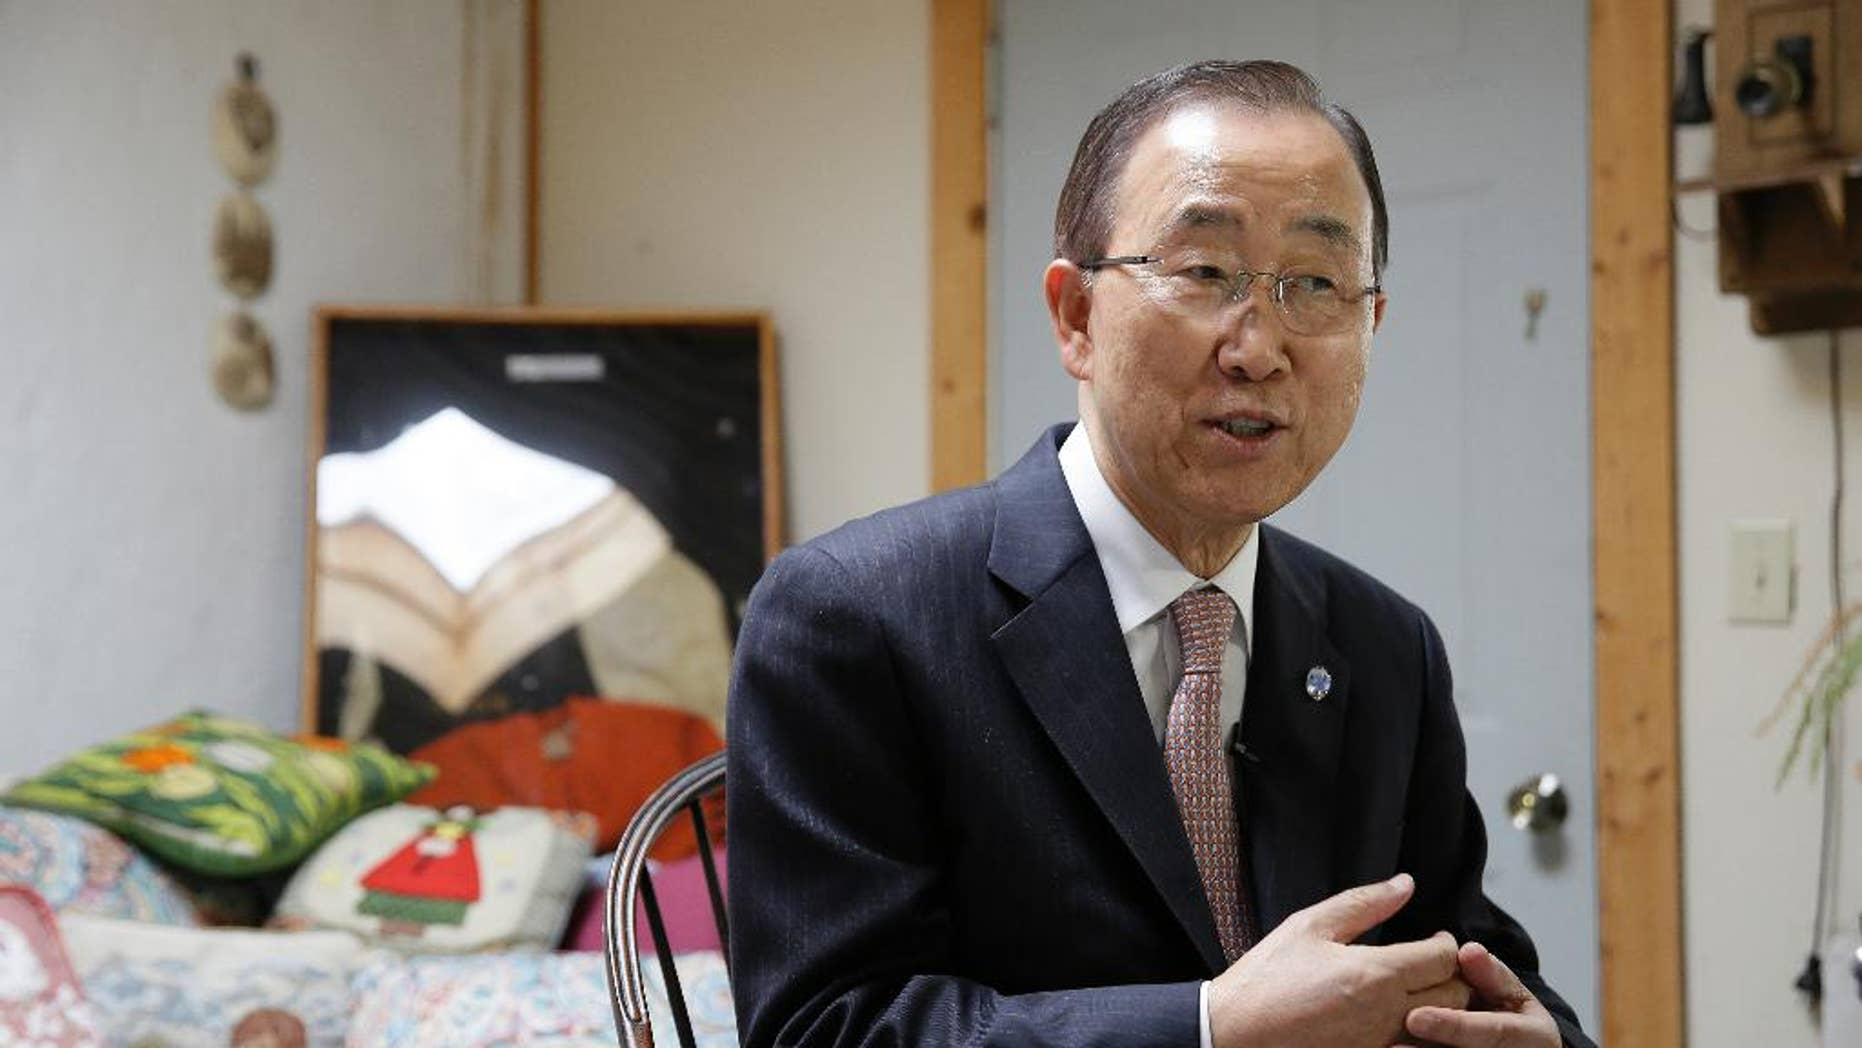 In this photo taken Aug. 11, 2016, U.N. Secretary-General Ban Ki-moon sits during an interview in Novato, Calif. During the interview he said he would personally like to see a woman become the next secretary-general of the United Nations for the first time since it was established more than 70 years ago. (AP Photo/Eric Risberg)